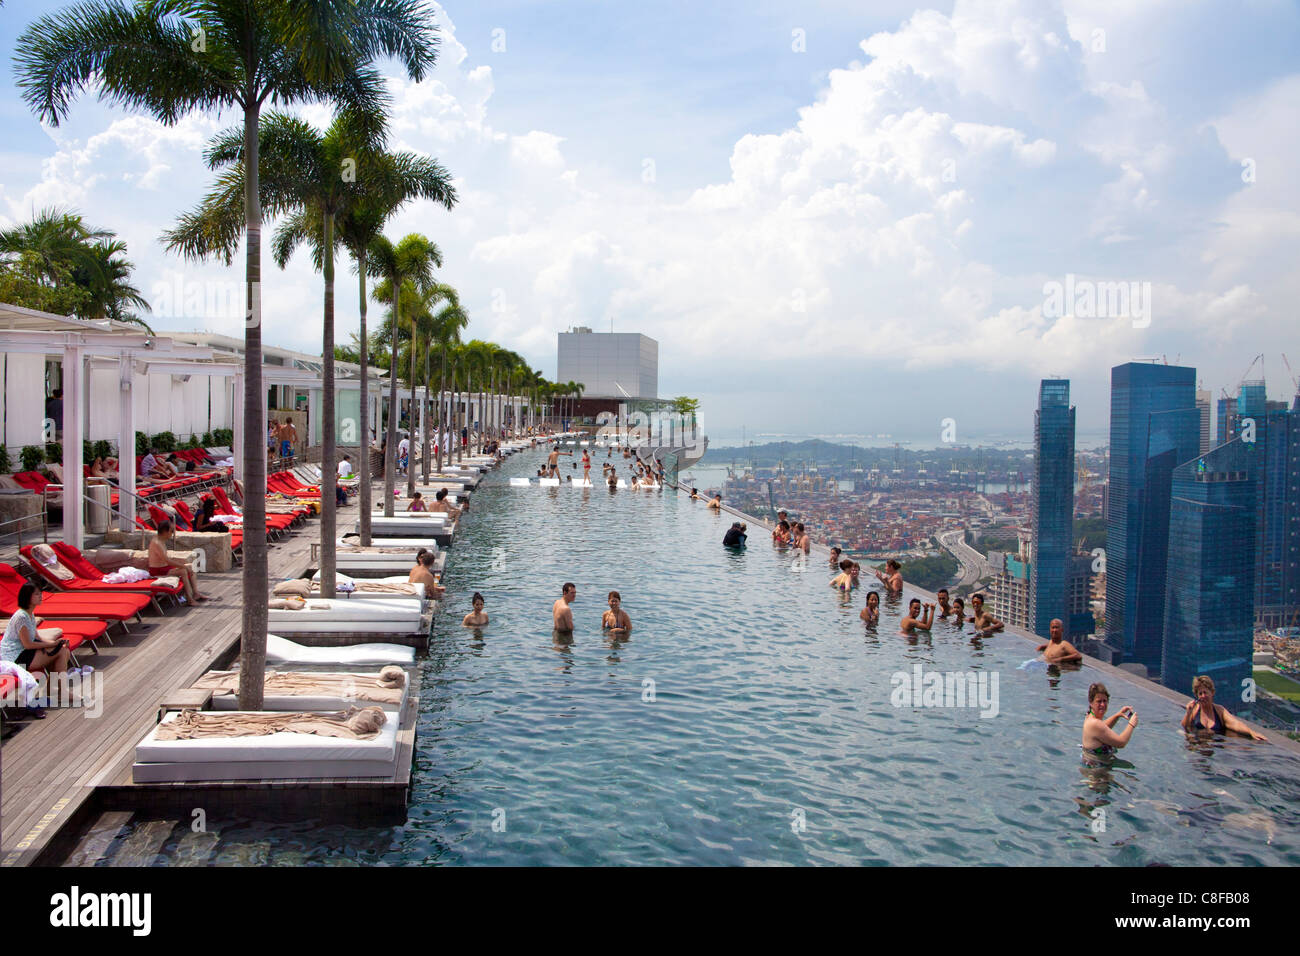 Singapore asia marina bay hotel hotel pool look - Rooftop swimming pool in singapore ...